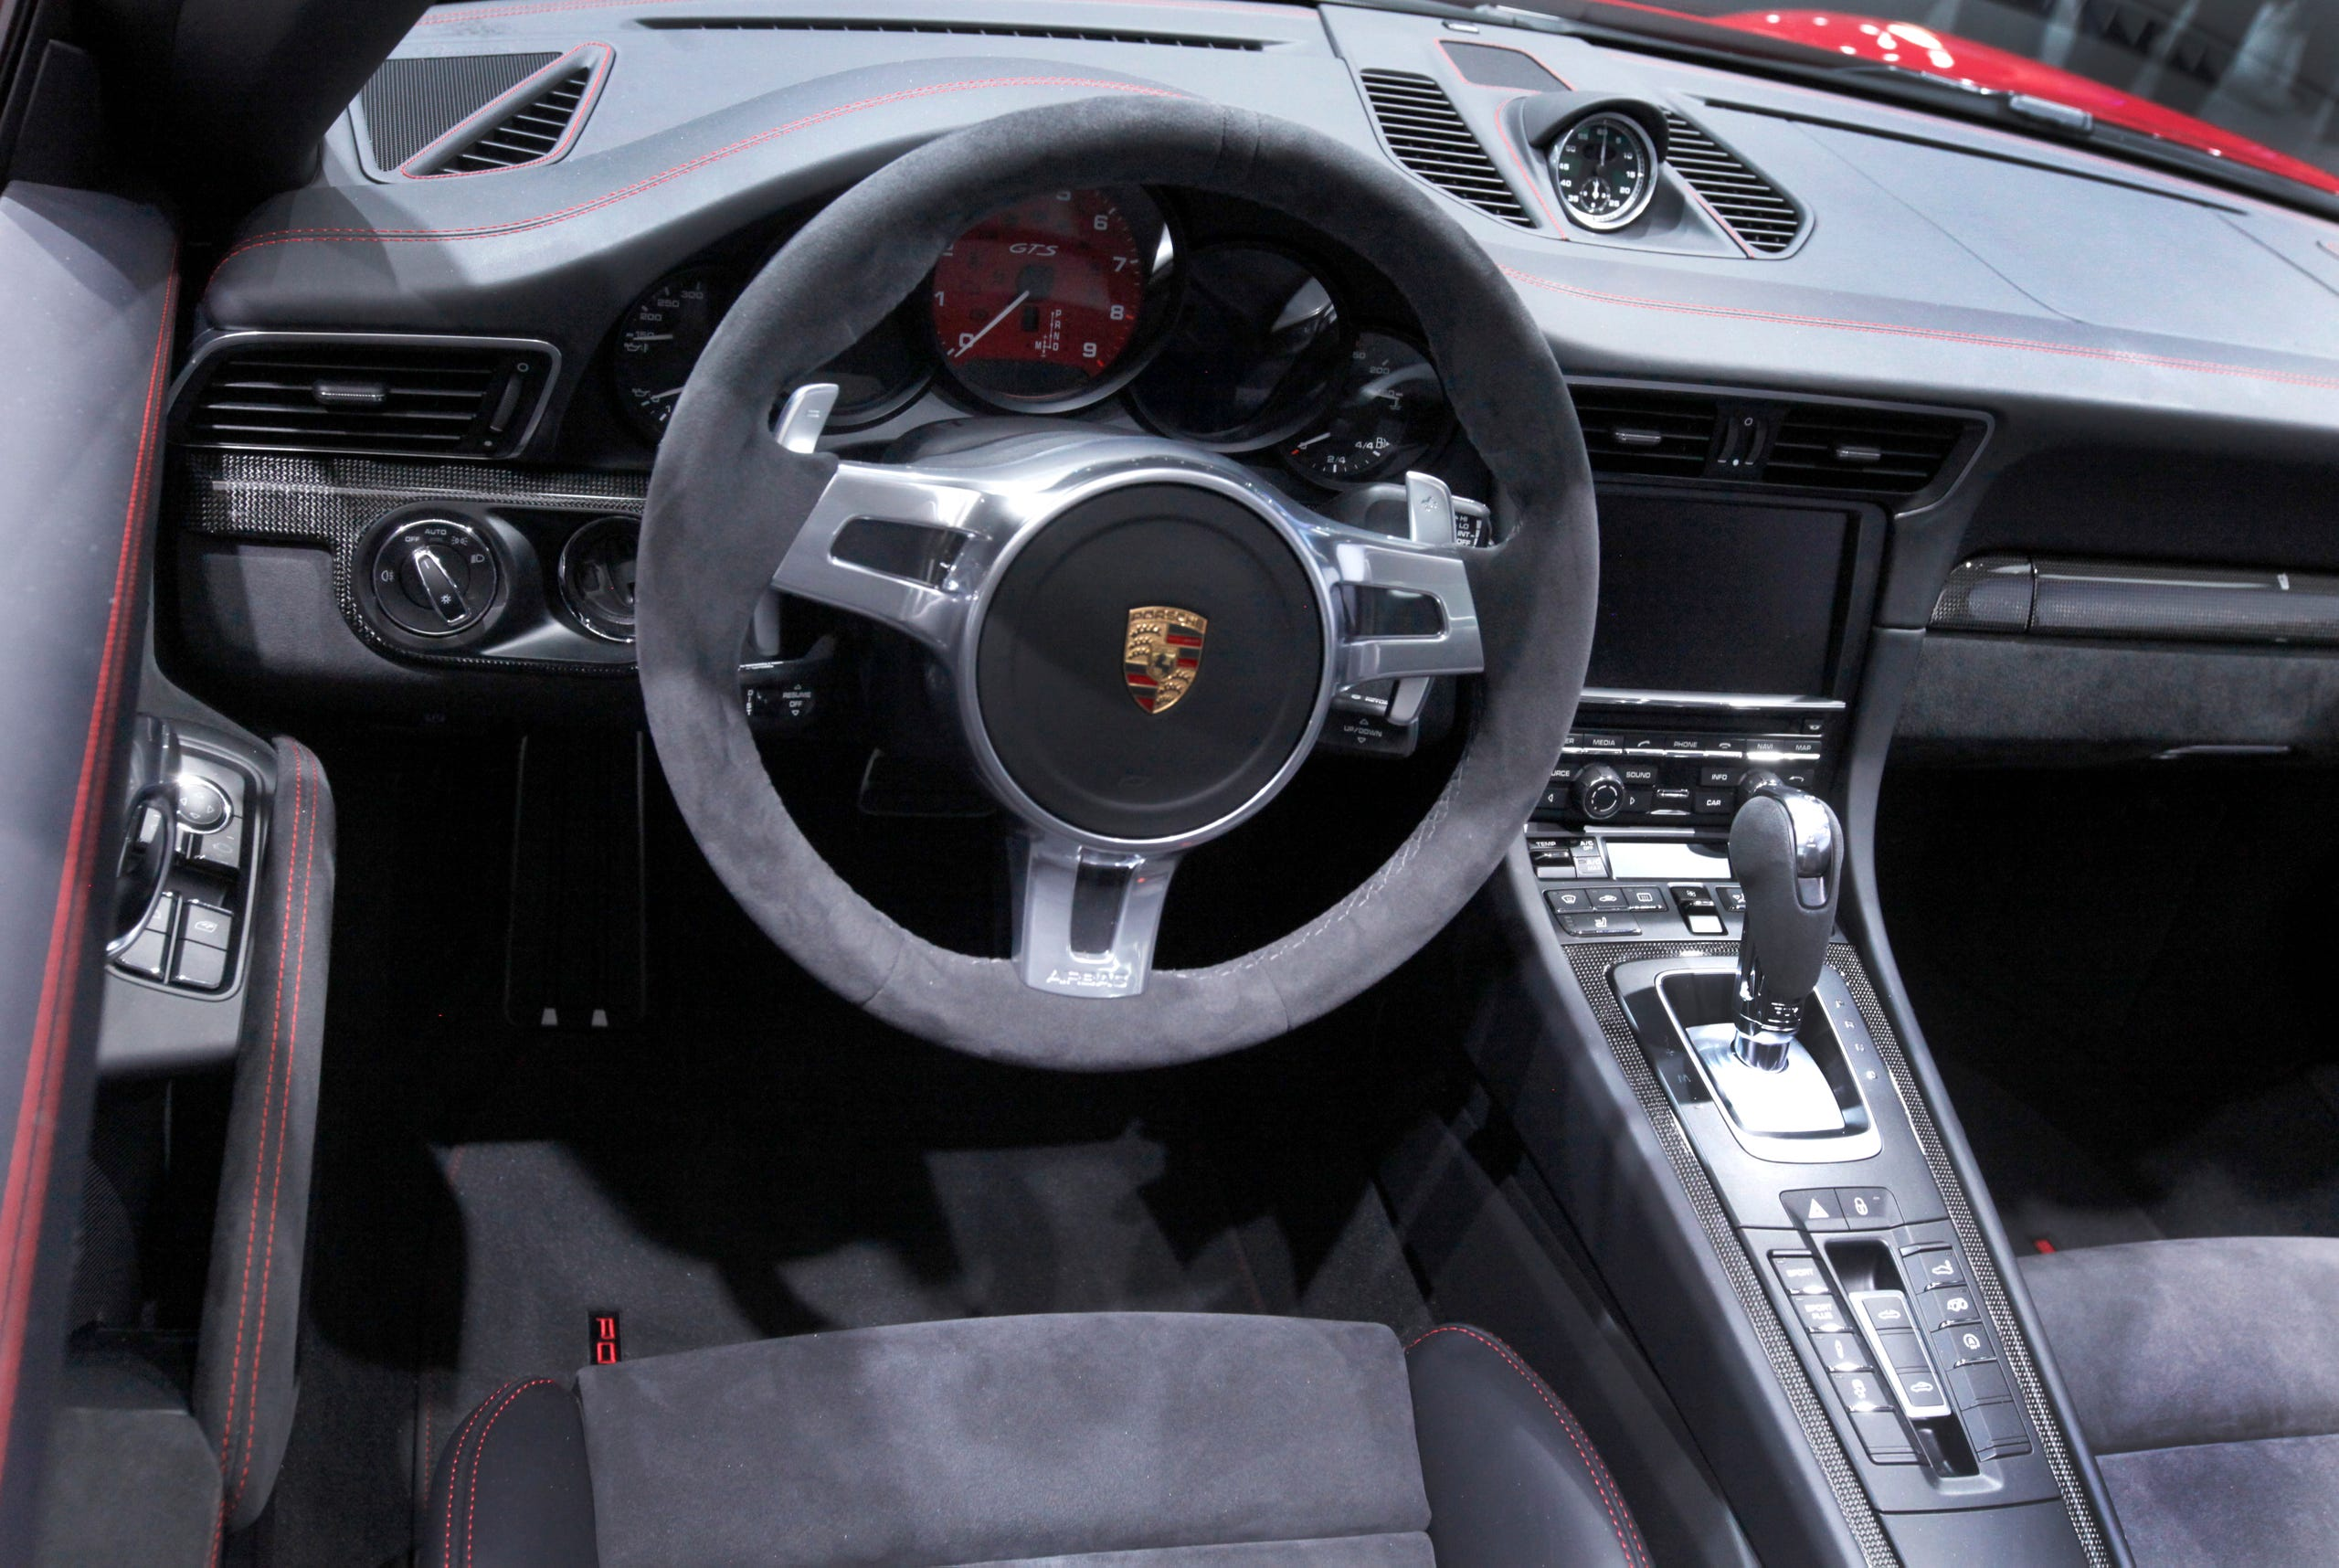 Interior and steering wheel of the Porsche 911 Targa GTS at the 2015 North American International Auto Show at Cobo Center on Monday, Jan. 12, 2015.